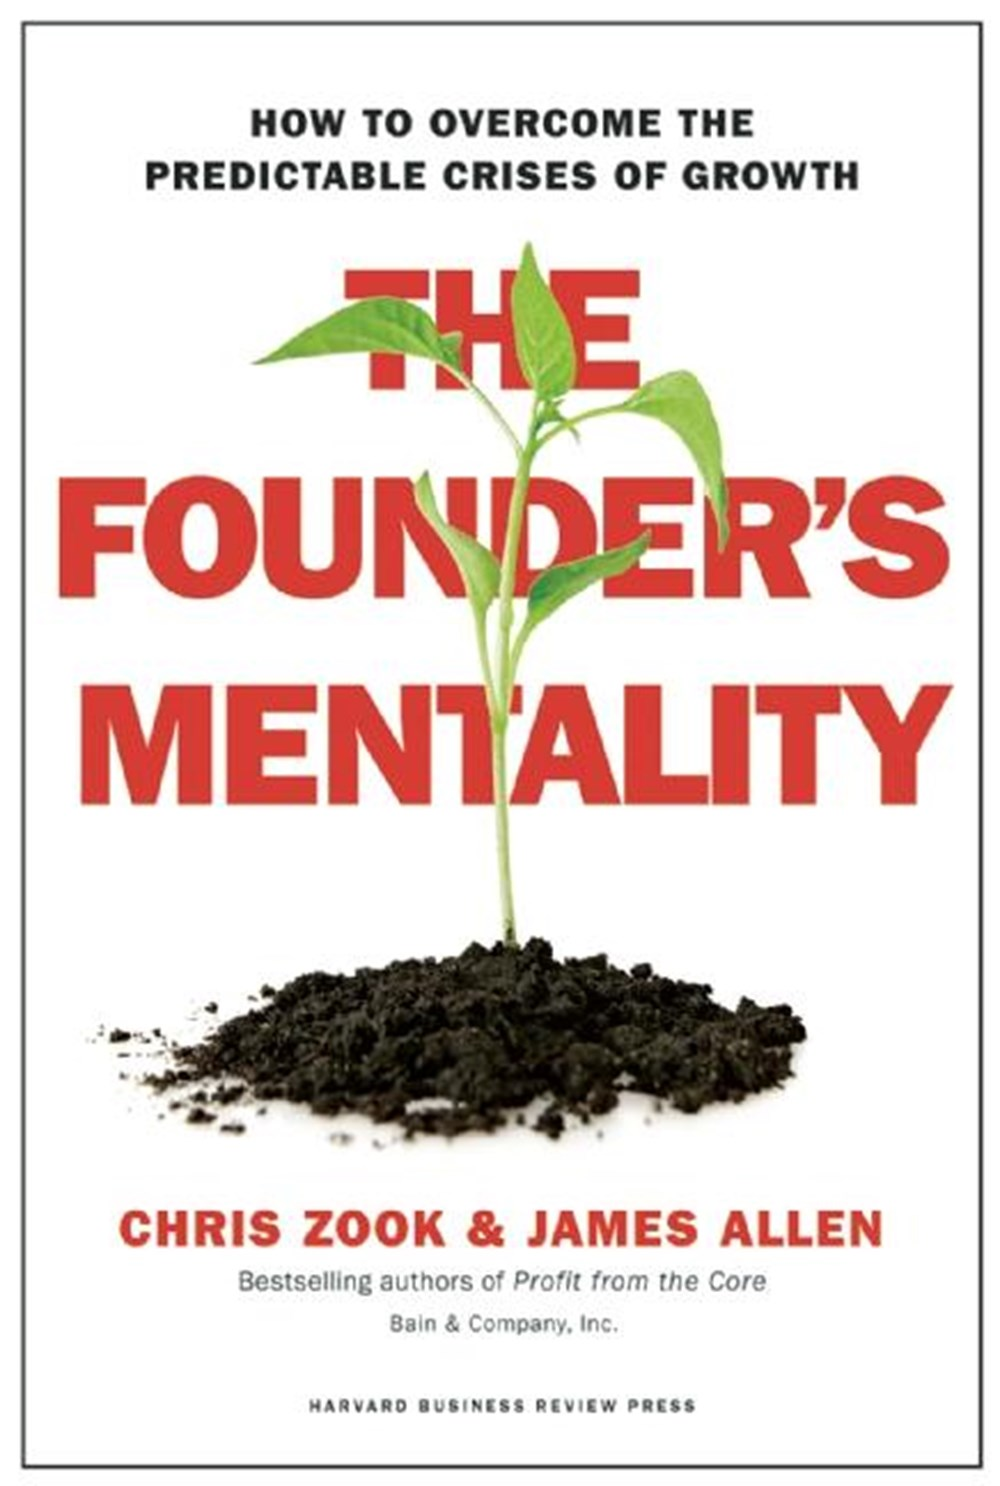 Founder's Mentality How to Overcome the Predictable Crises of Growth